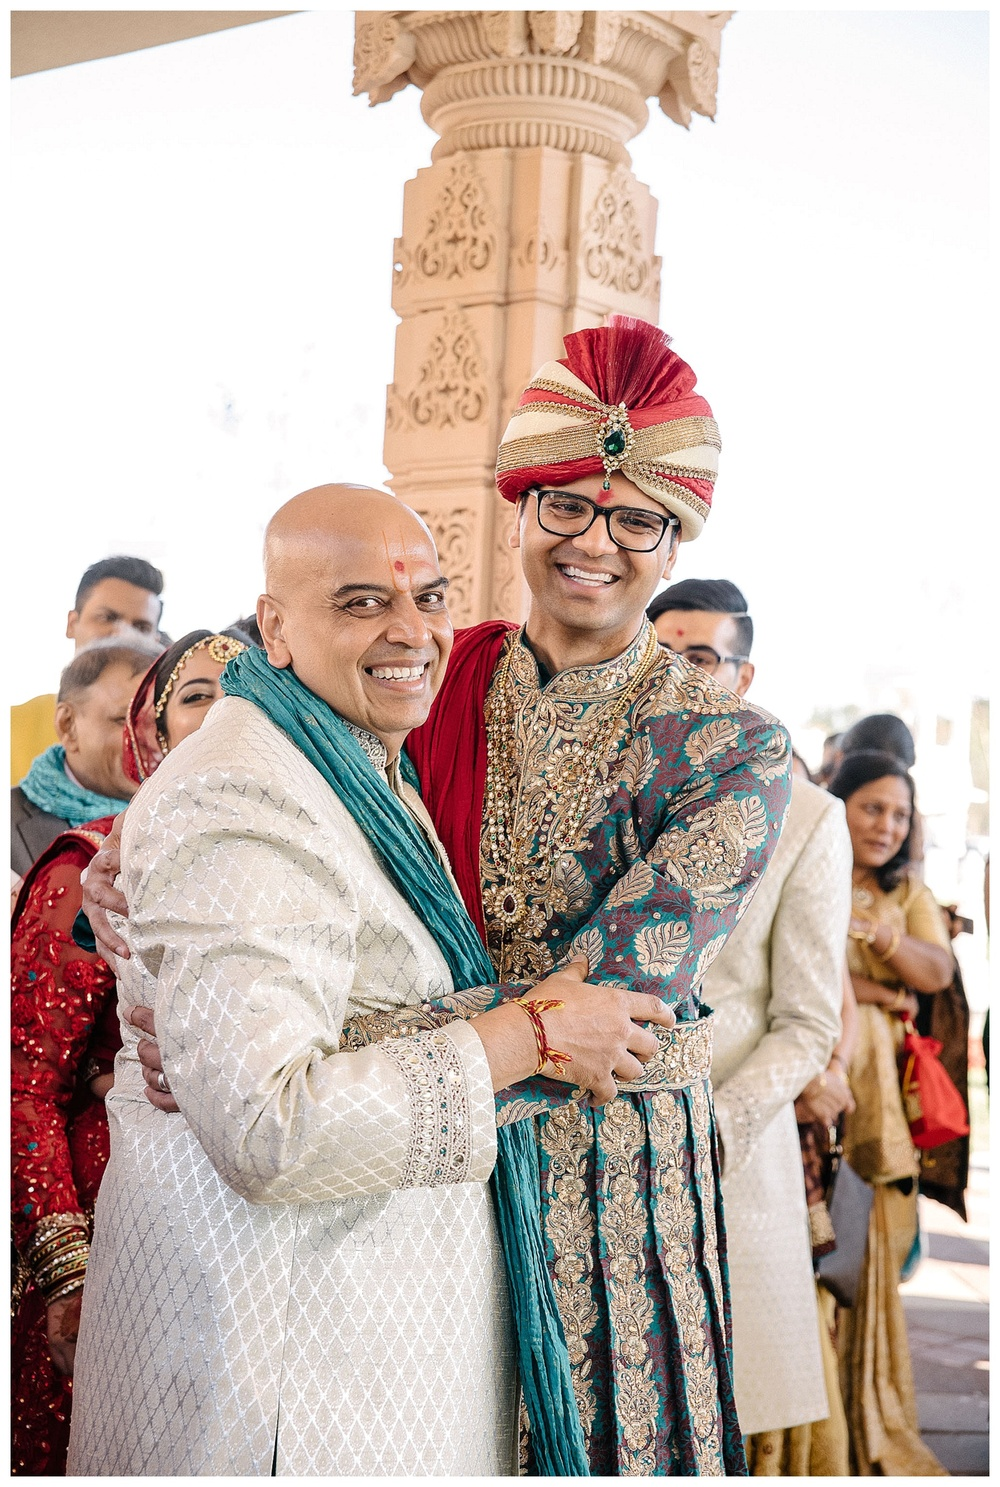 Atlanta BAPS Wedding Photographer-BAPS Indian wedding photos (2344 of 2502).jpg